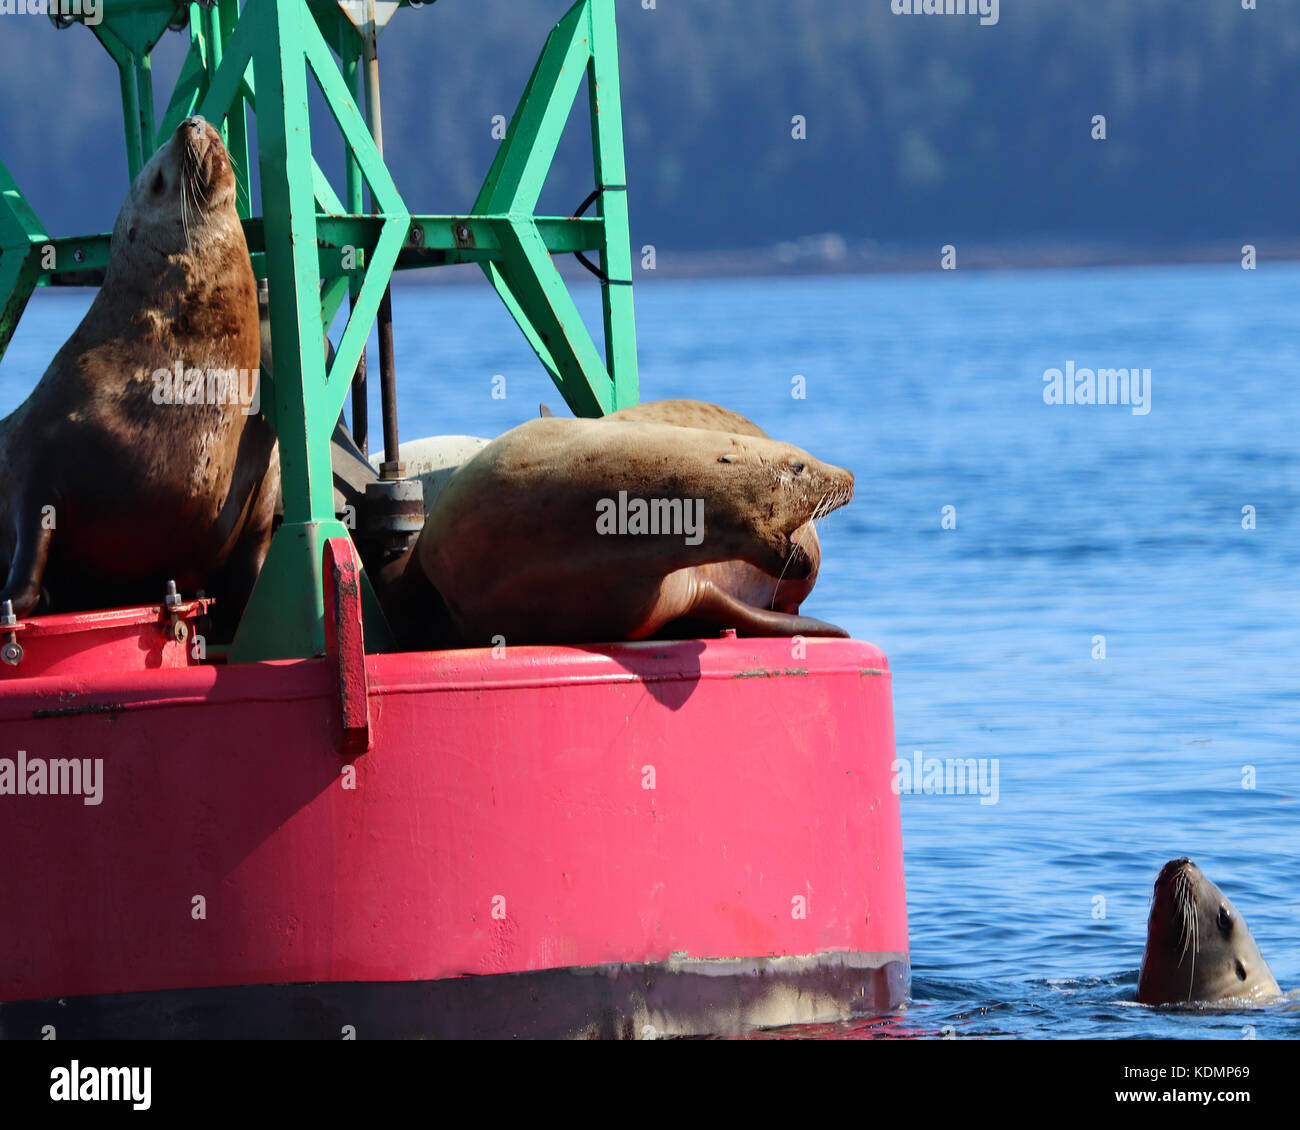 Stellar Sea Lions interacting with each other as they via for dominance and a spot to rest on a large ocean buoy - Stock Image